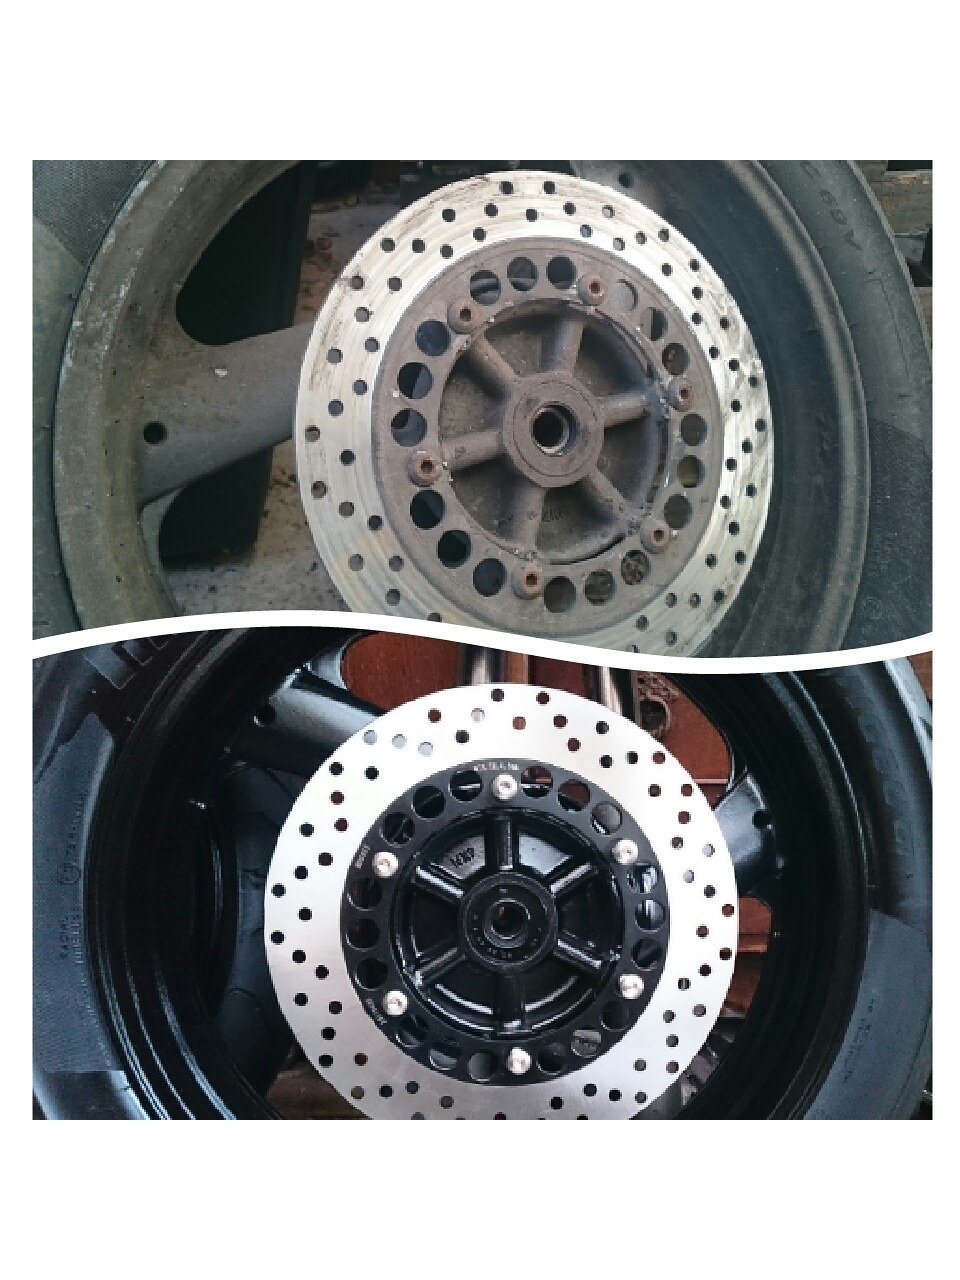 Before and after pics of the wheels